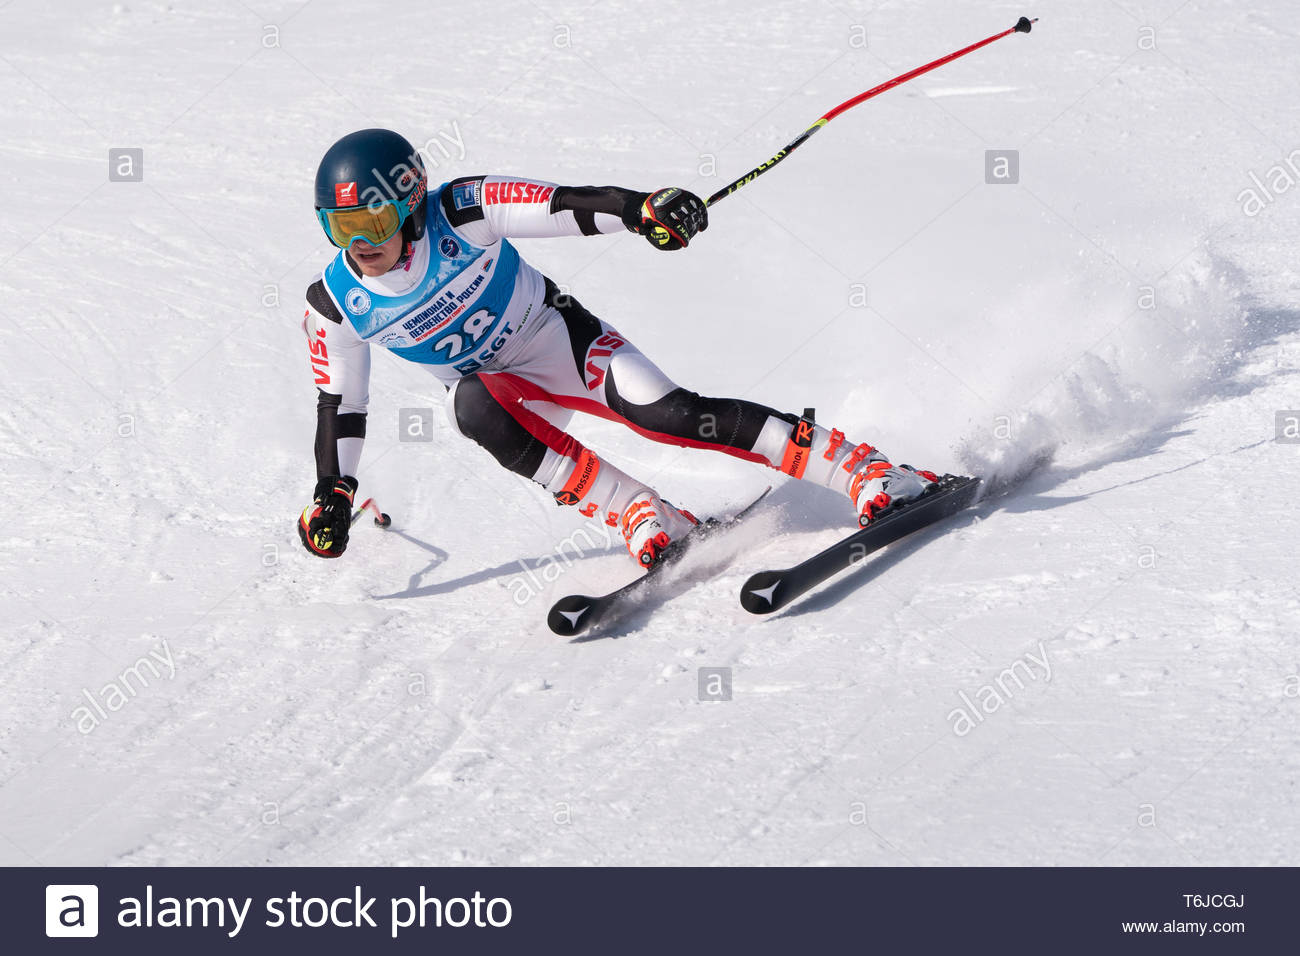 KAMCHATKA PENINSULA, RUSSIA - APR 1, 2019: Russian Alpine Skiing Cup, International Ski Federation (FIS) Championship, giant slalom. Mount skier Sazon - Stock Image